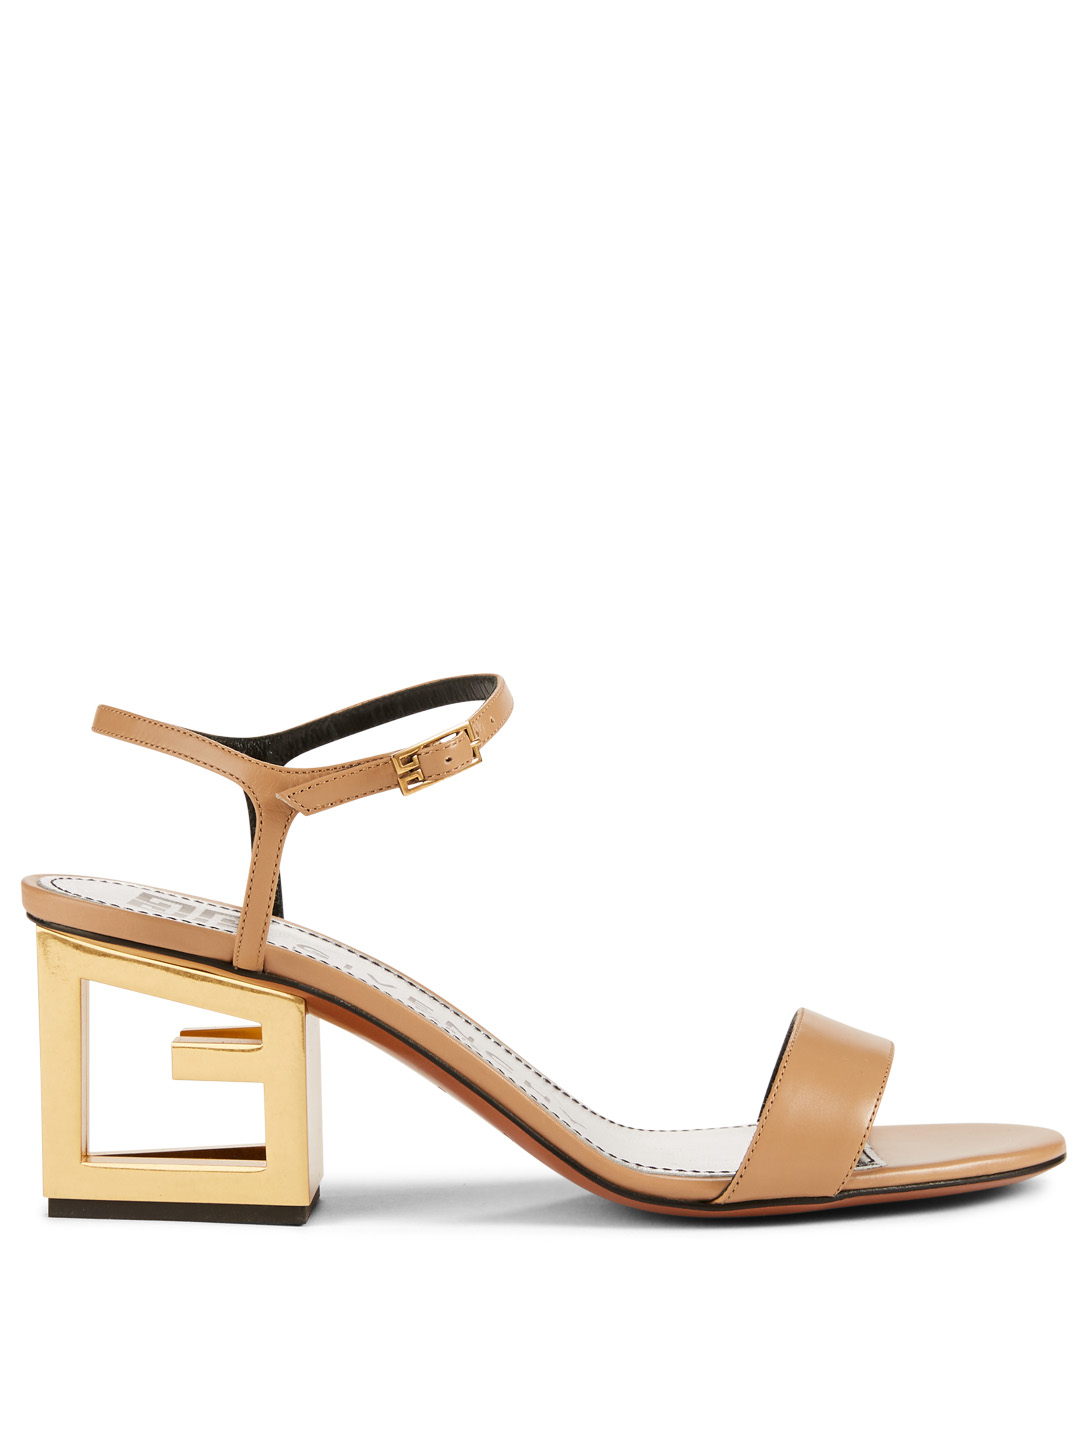 bb3754aa6a6c4 GIVENCHY Leather G Heeled Sandals Women's Neutral ...